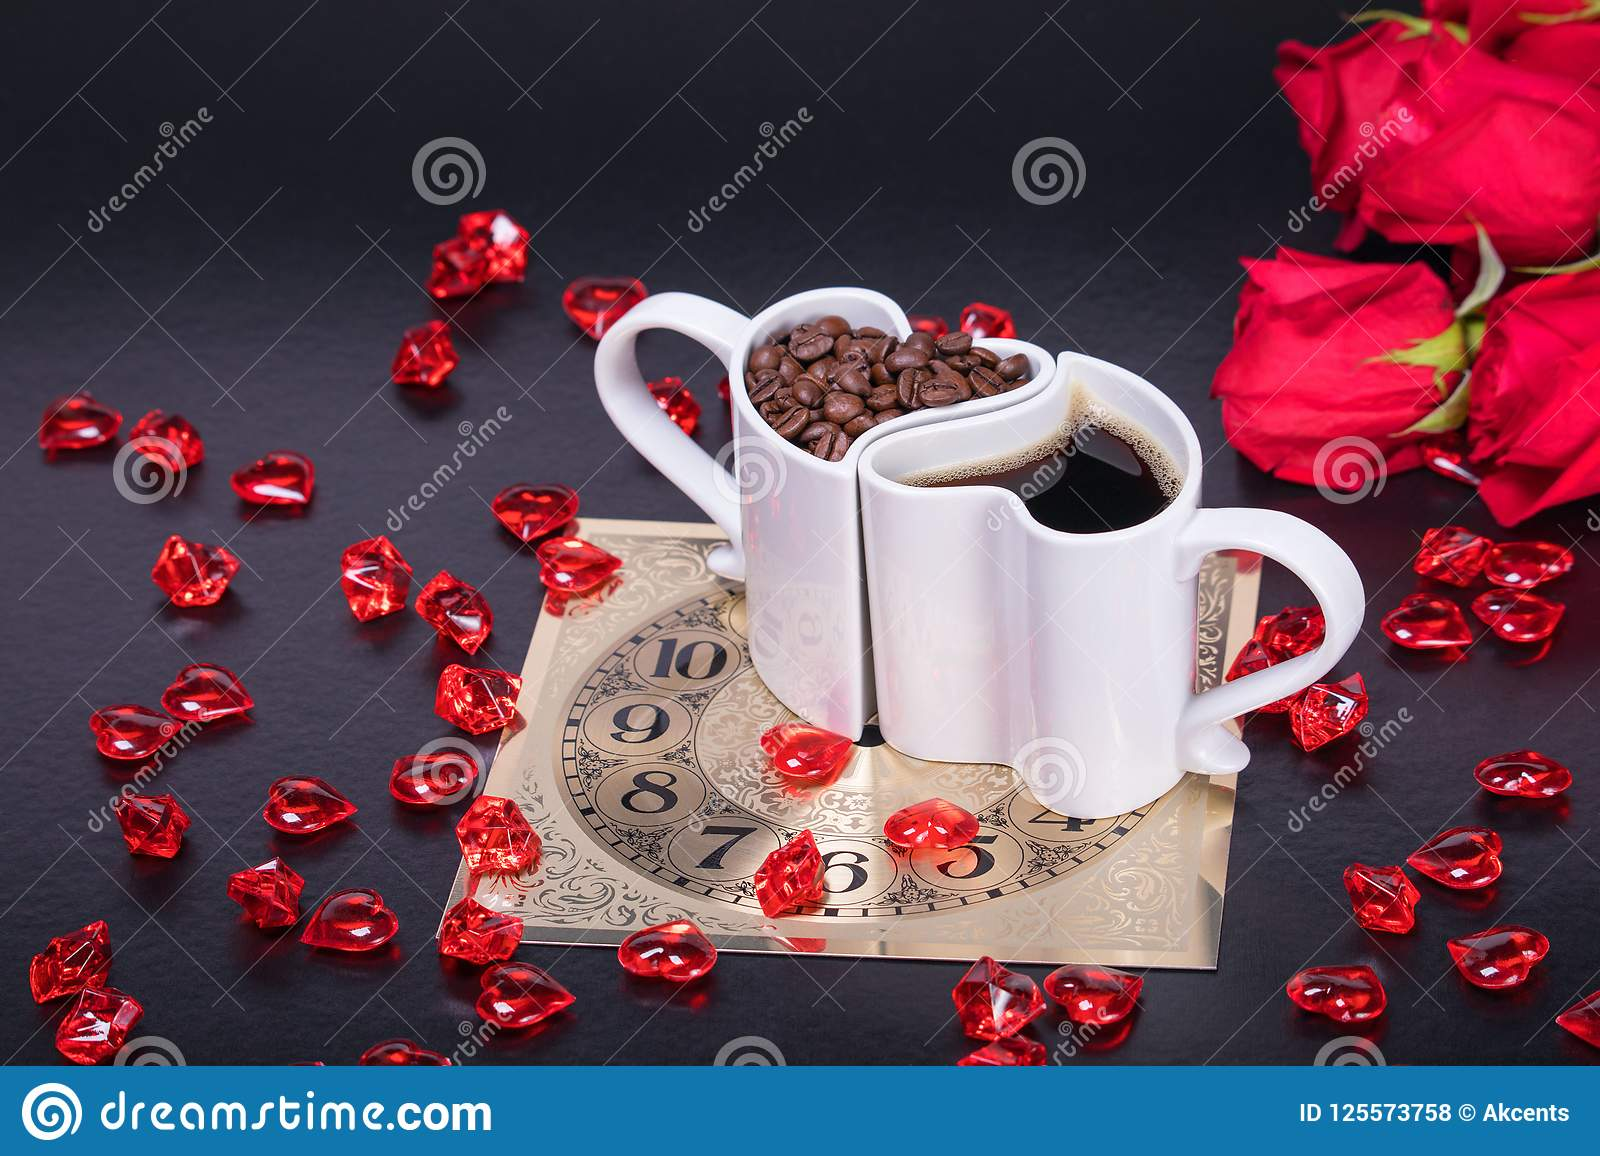 Heart Shaped Coffee Cup Filled With Coffee Beans And Coffee Stock Photo Image Of Food Flavor 125573758